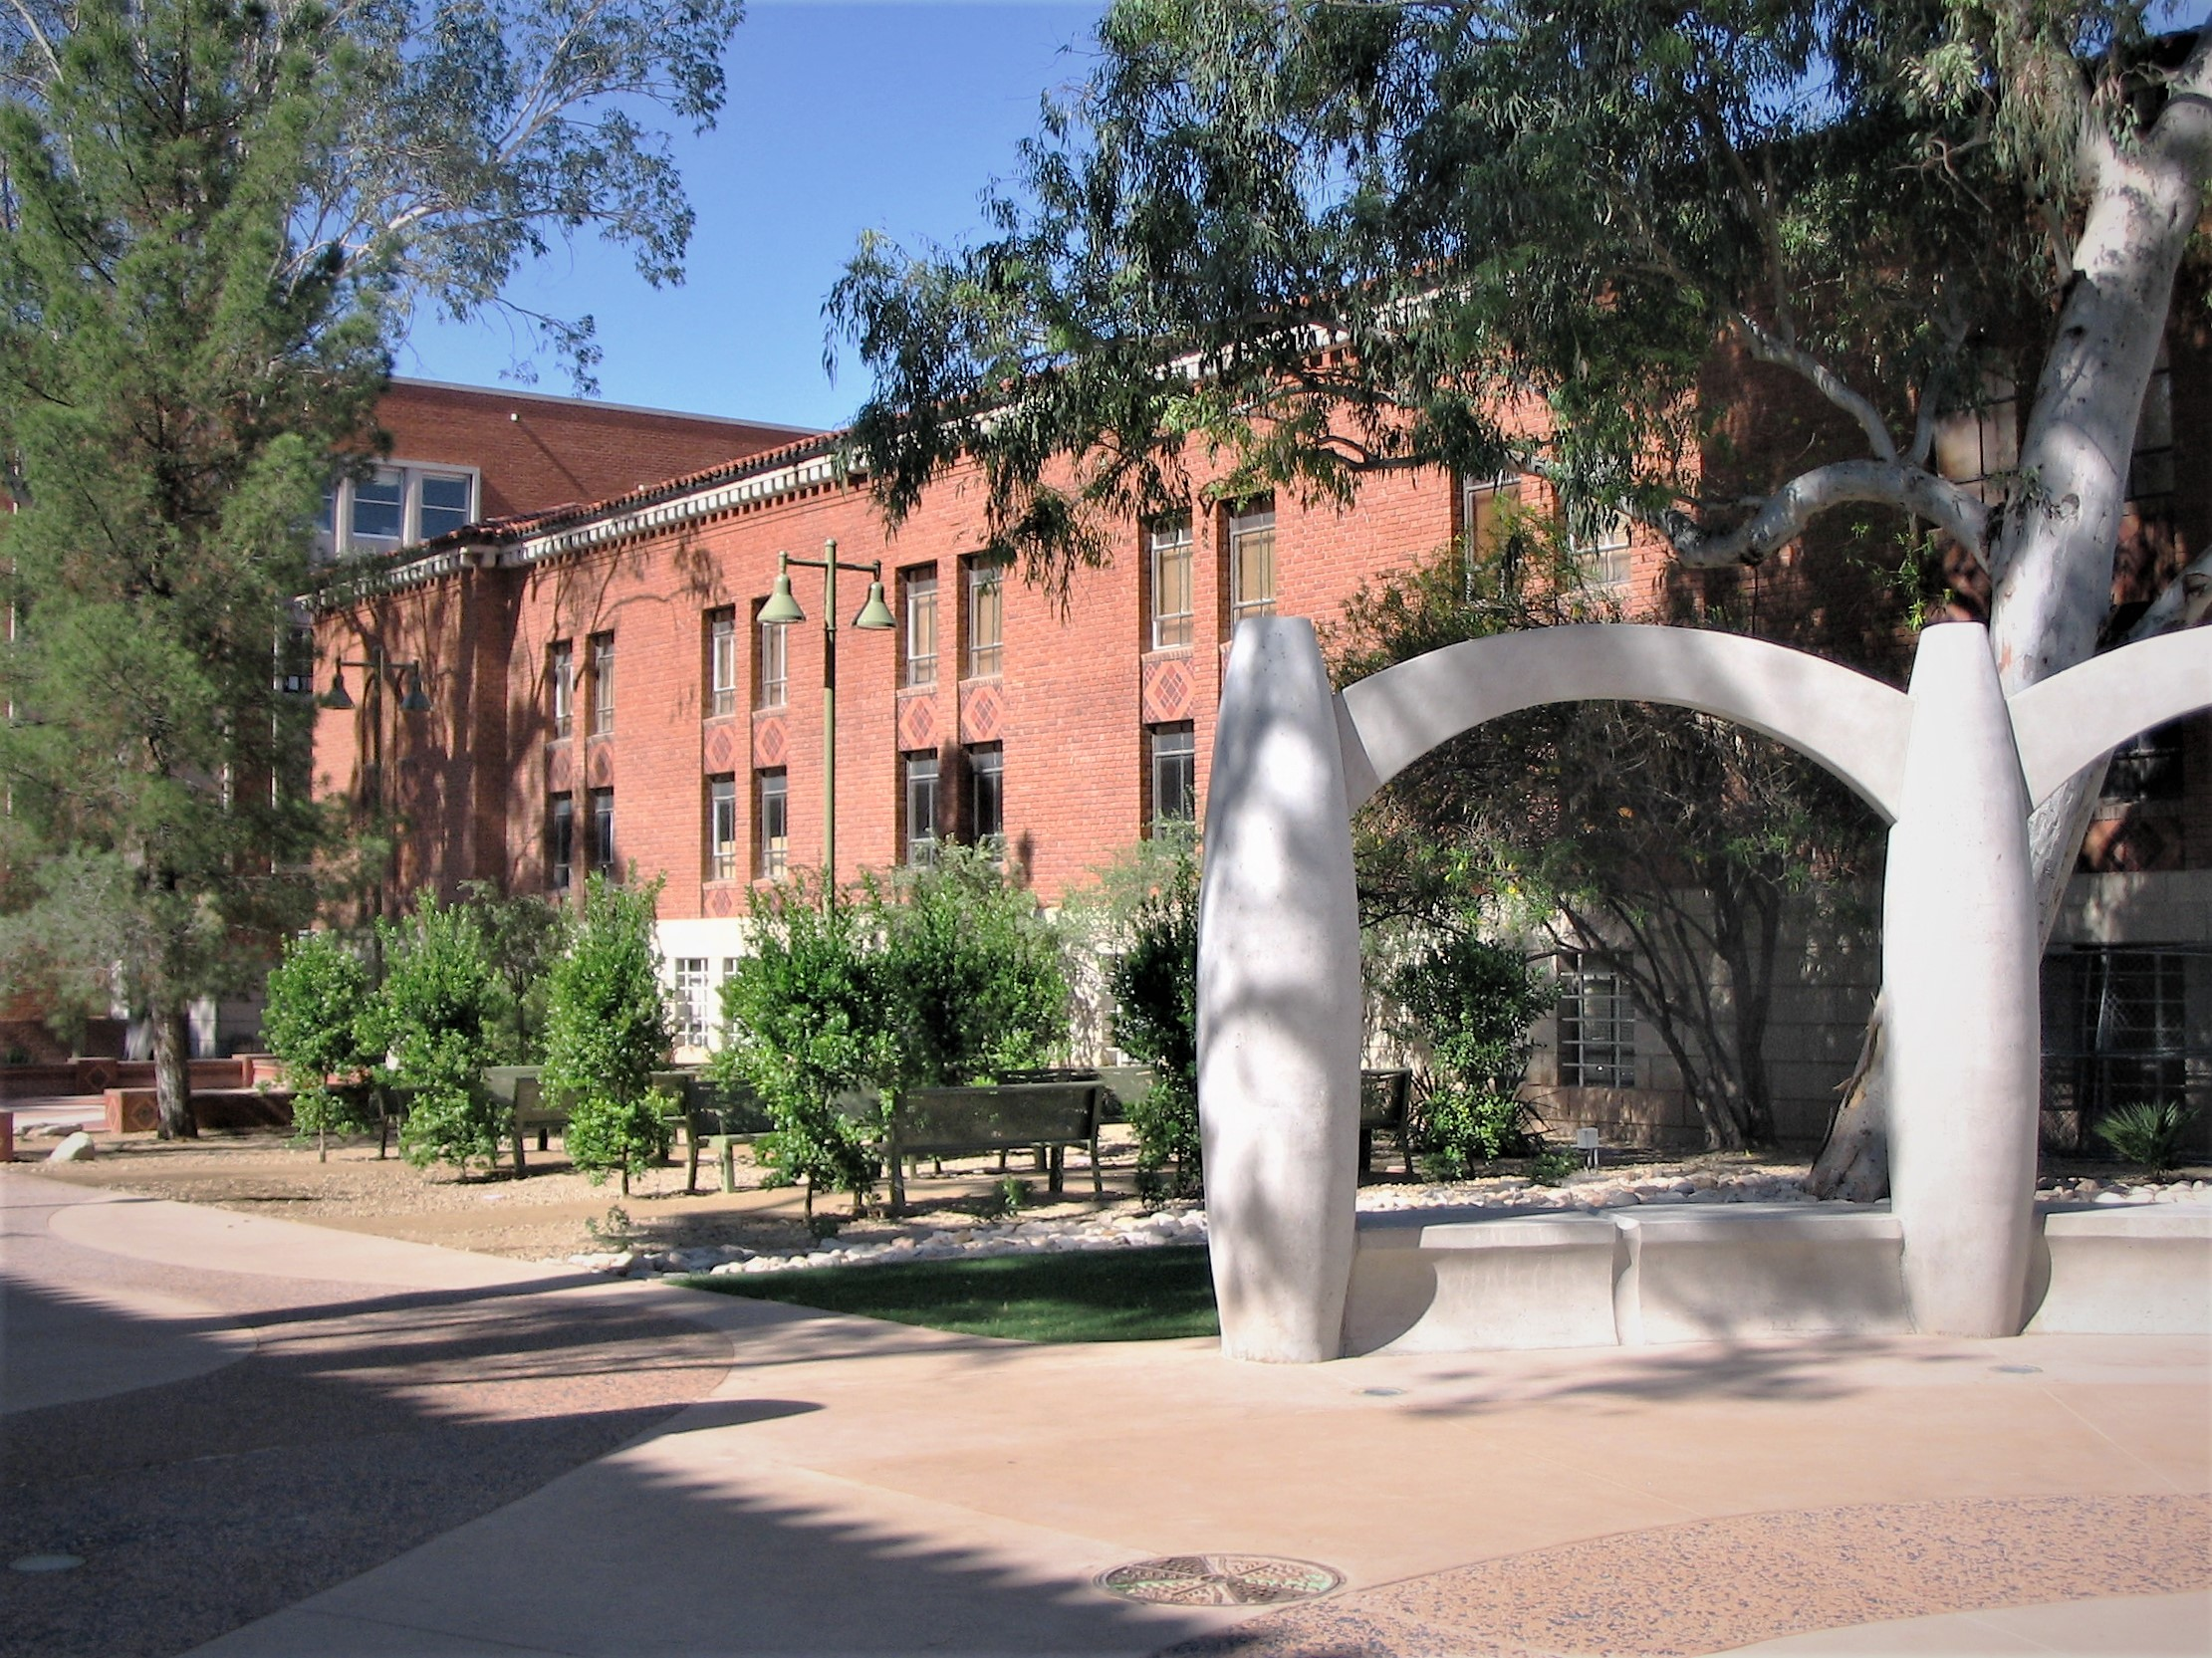 ... Landscape Architecture Firms In Tucson Participated In The Design And  Construction Of The Womenu0027s Plaza Of Honor On The University Of Arizona  Campus.